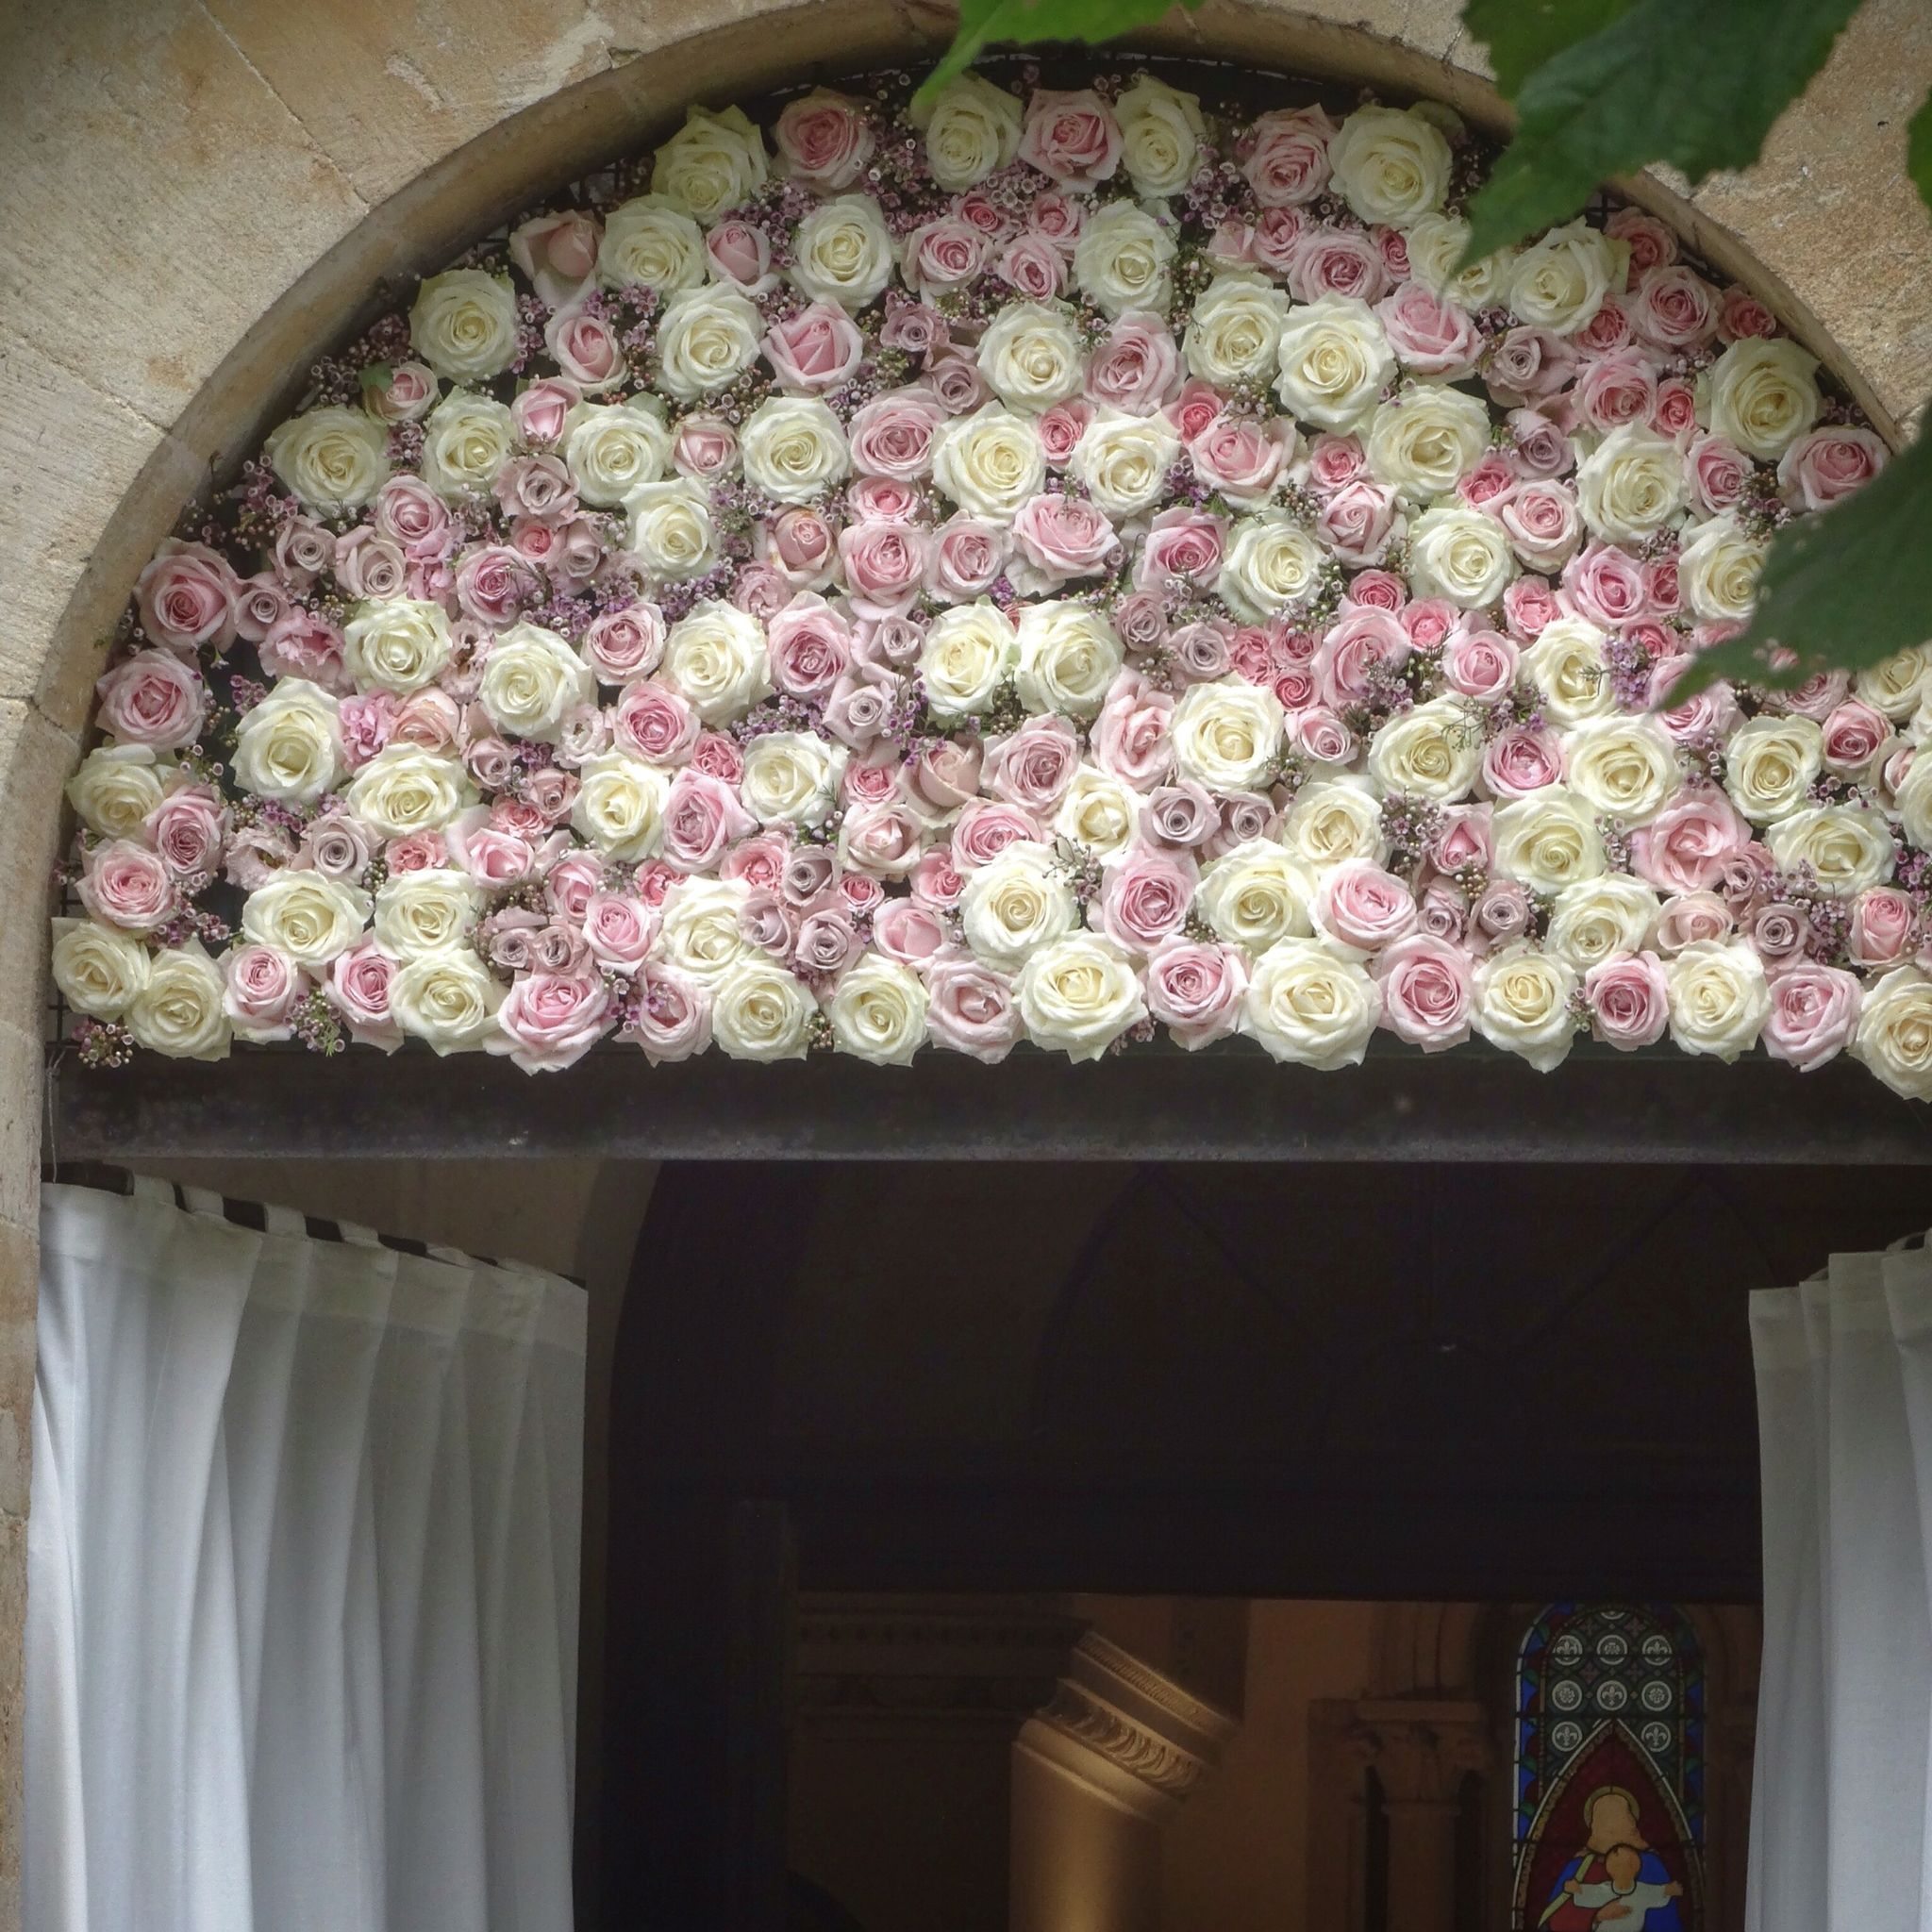 Church arch flowers, archway flowers, church flowers, flowers over ...